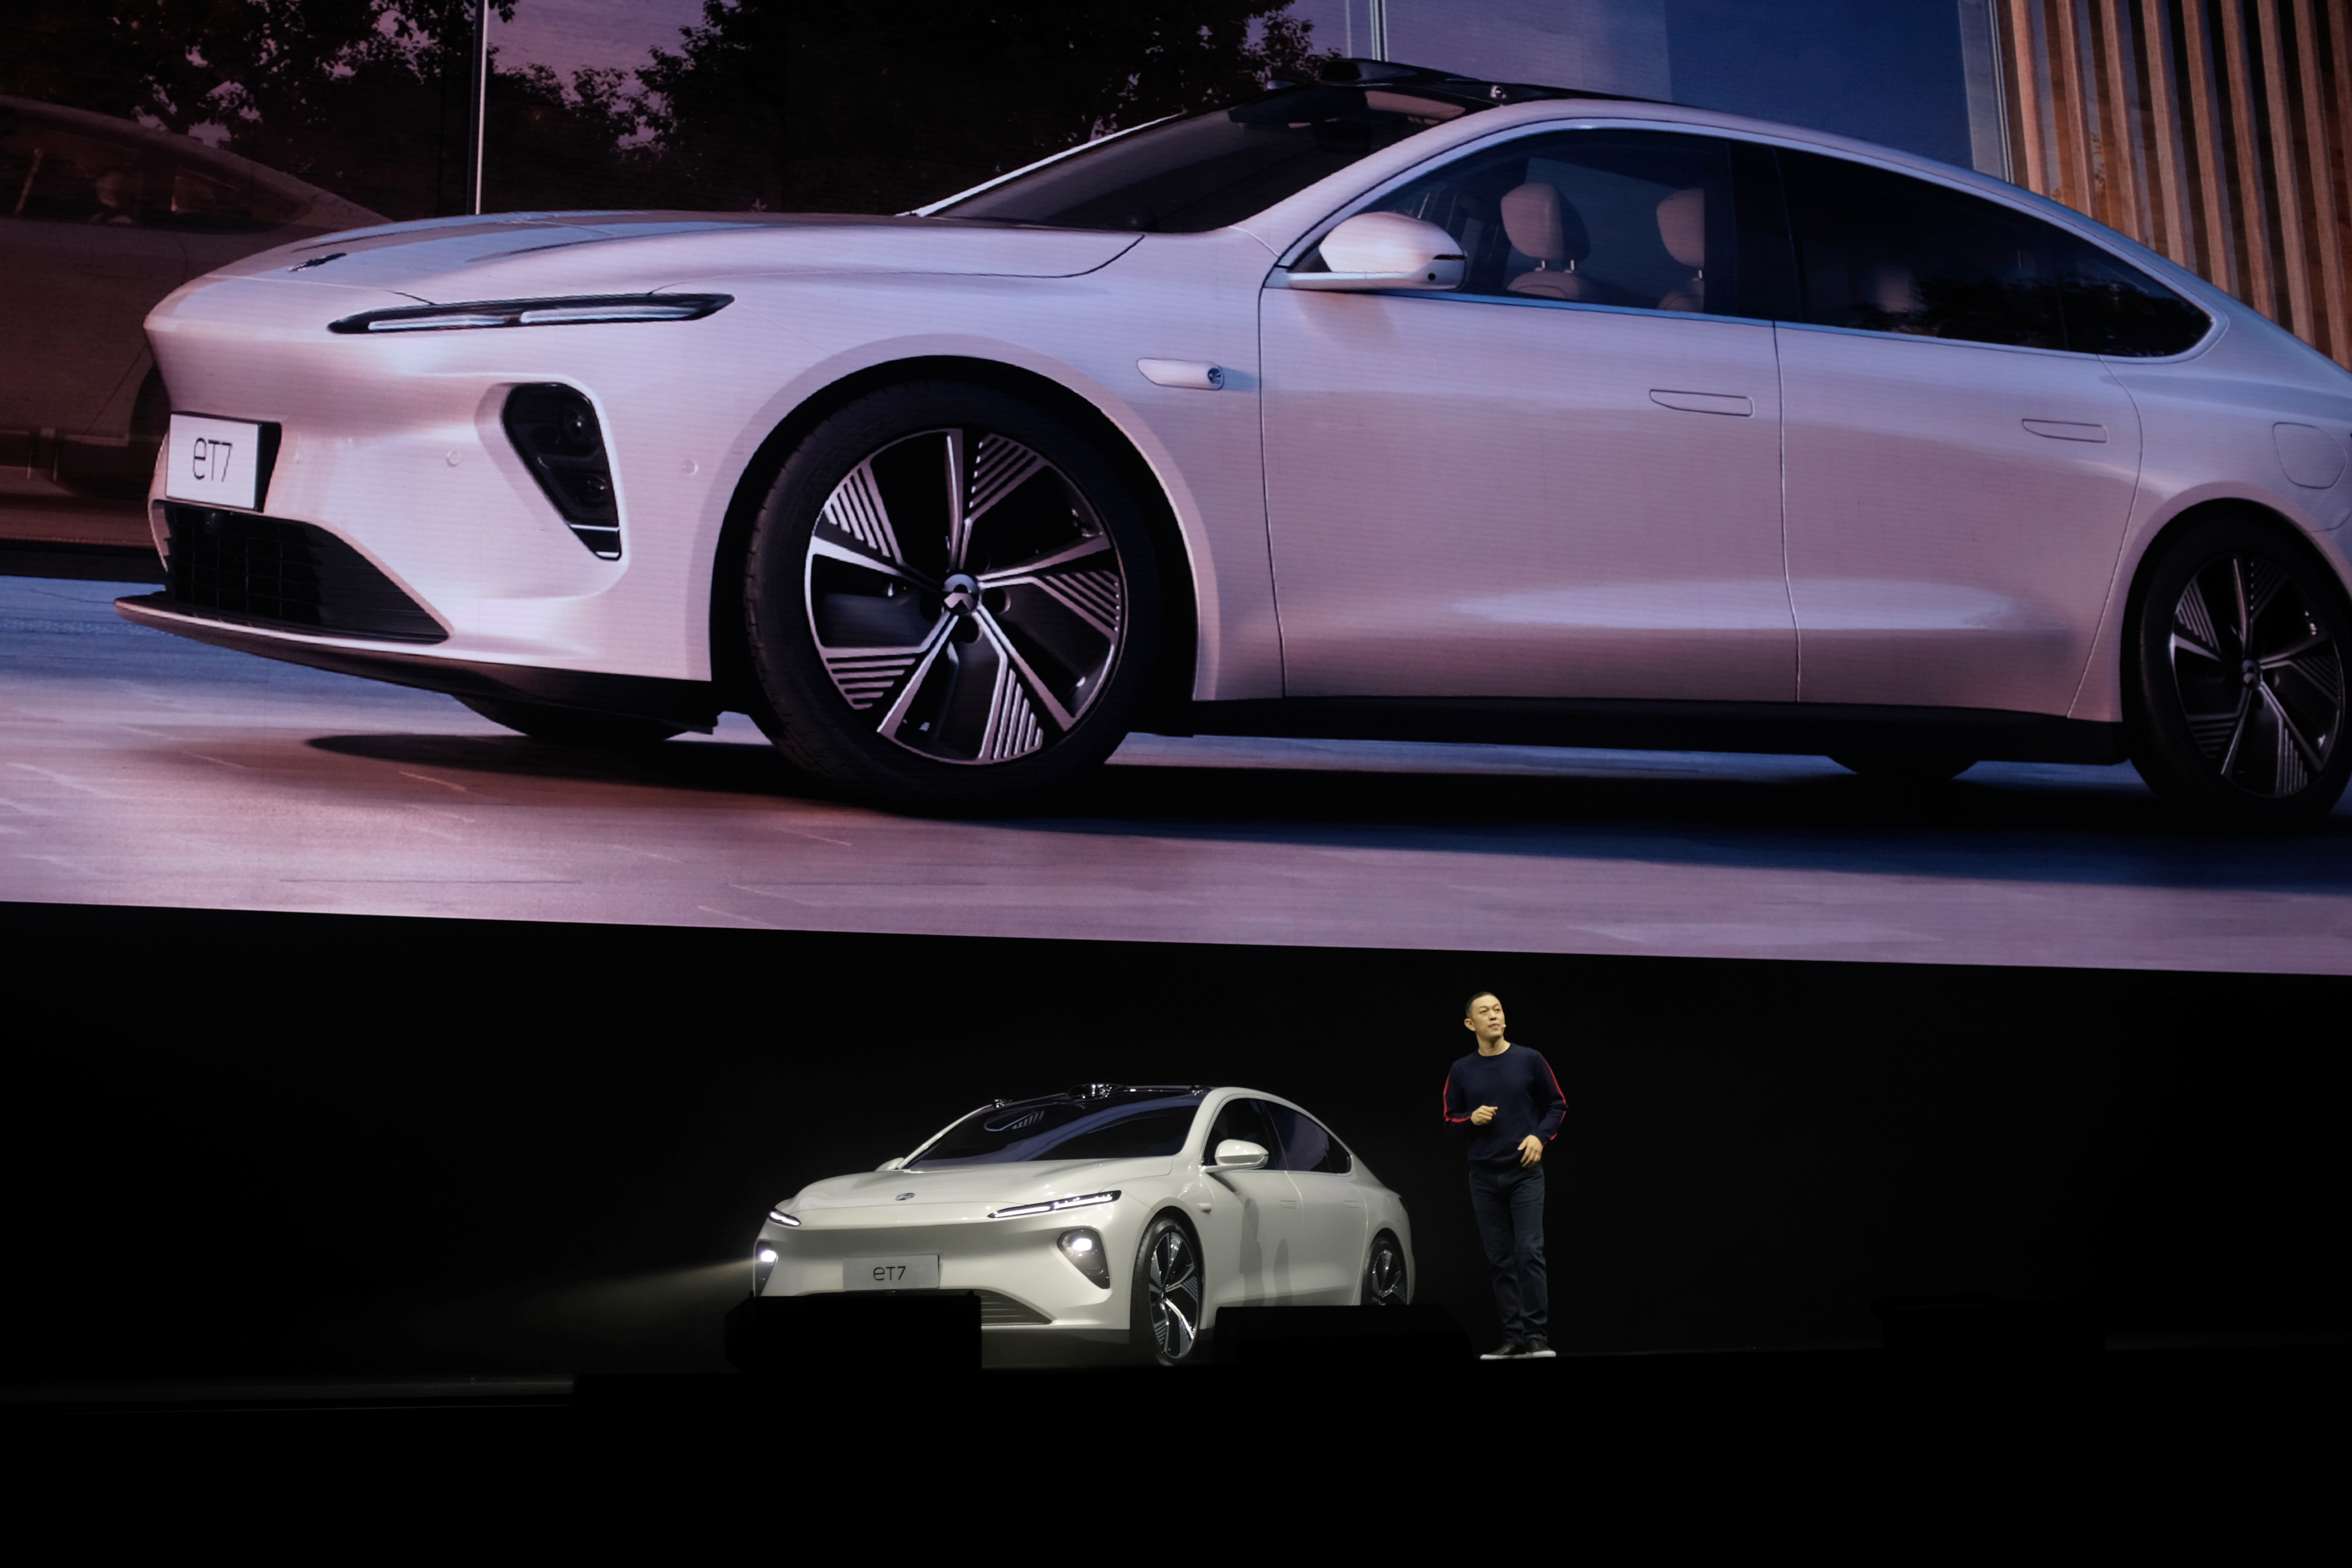 William Li, founder and chief executive officer (CEO) of Chinese electric vehicle maker Nio Inc, unveils Nio's ET7 sedan at a product launch event in Chengdu, Sichuan province, China, January 9, 2021. REUTERS/Yilei Sun